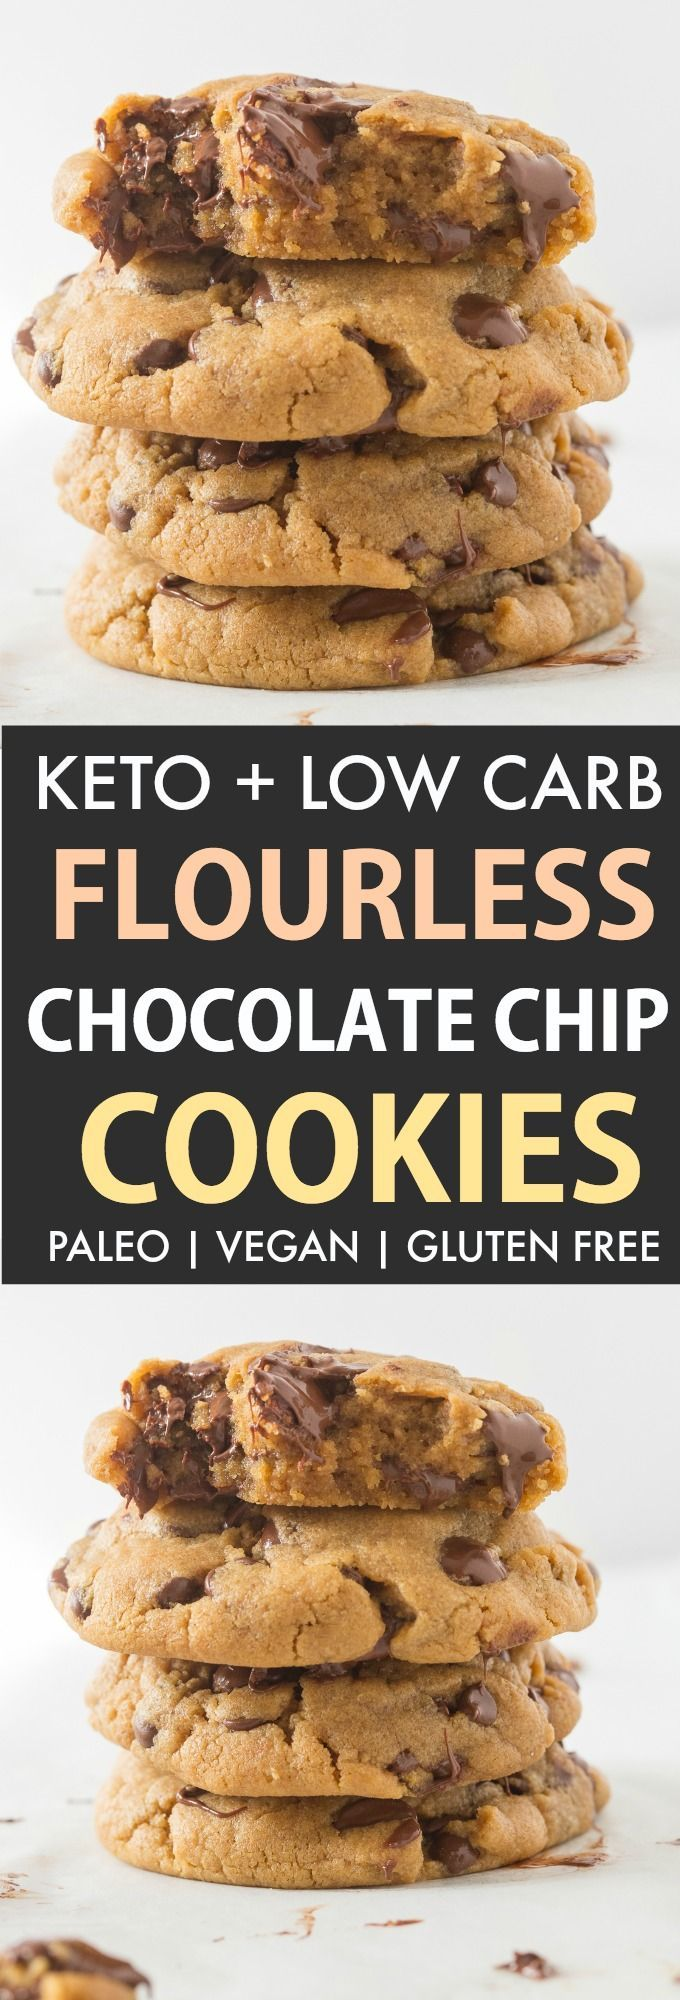 These are the BEST Keto Chocolate Chip Cookies- Soft, chewy, FLOURLESS and made ... -